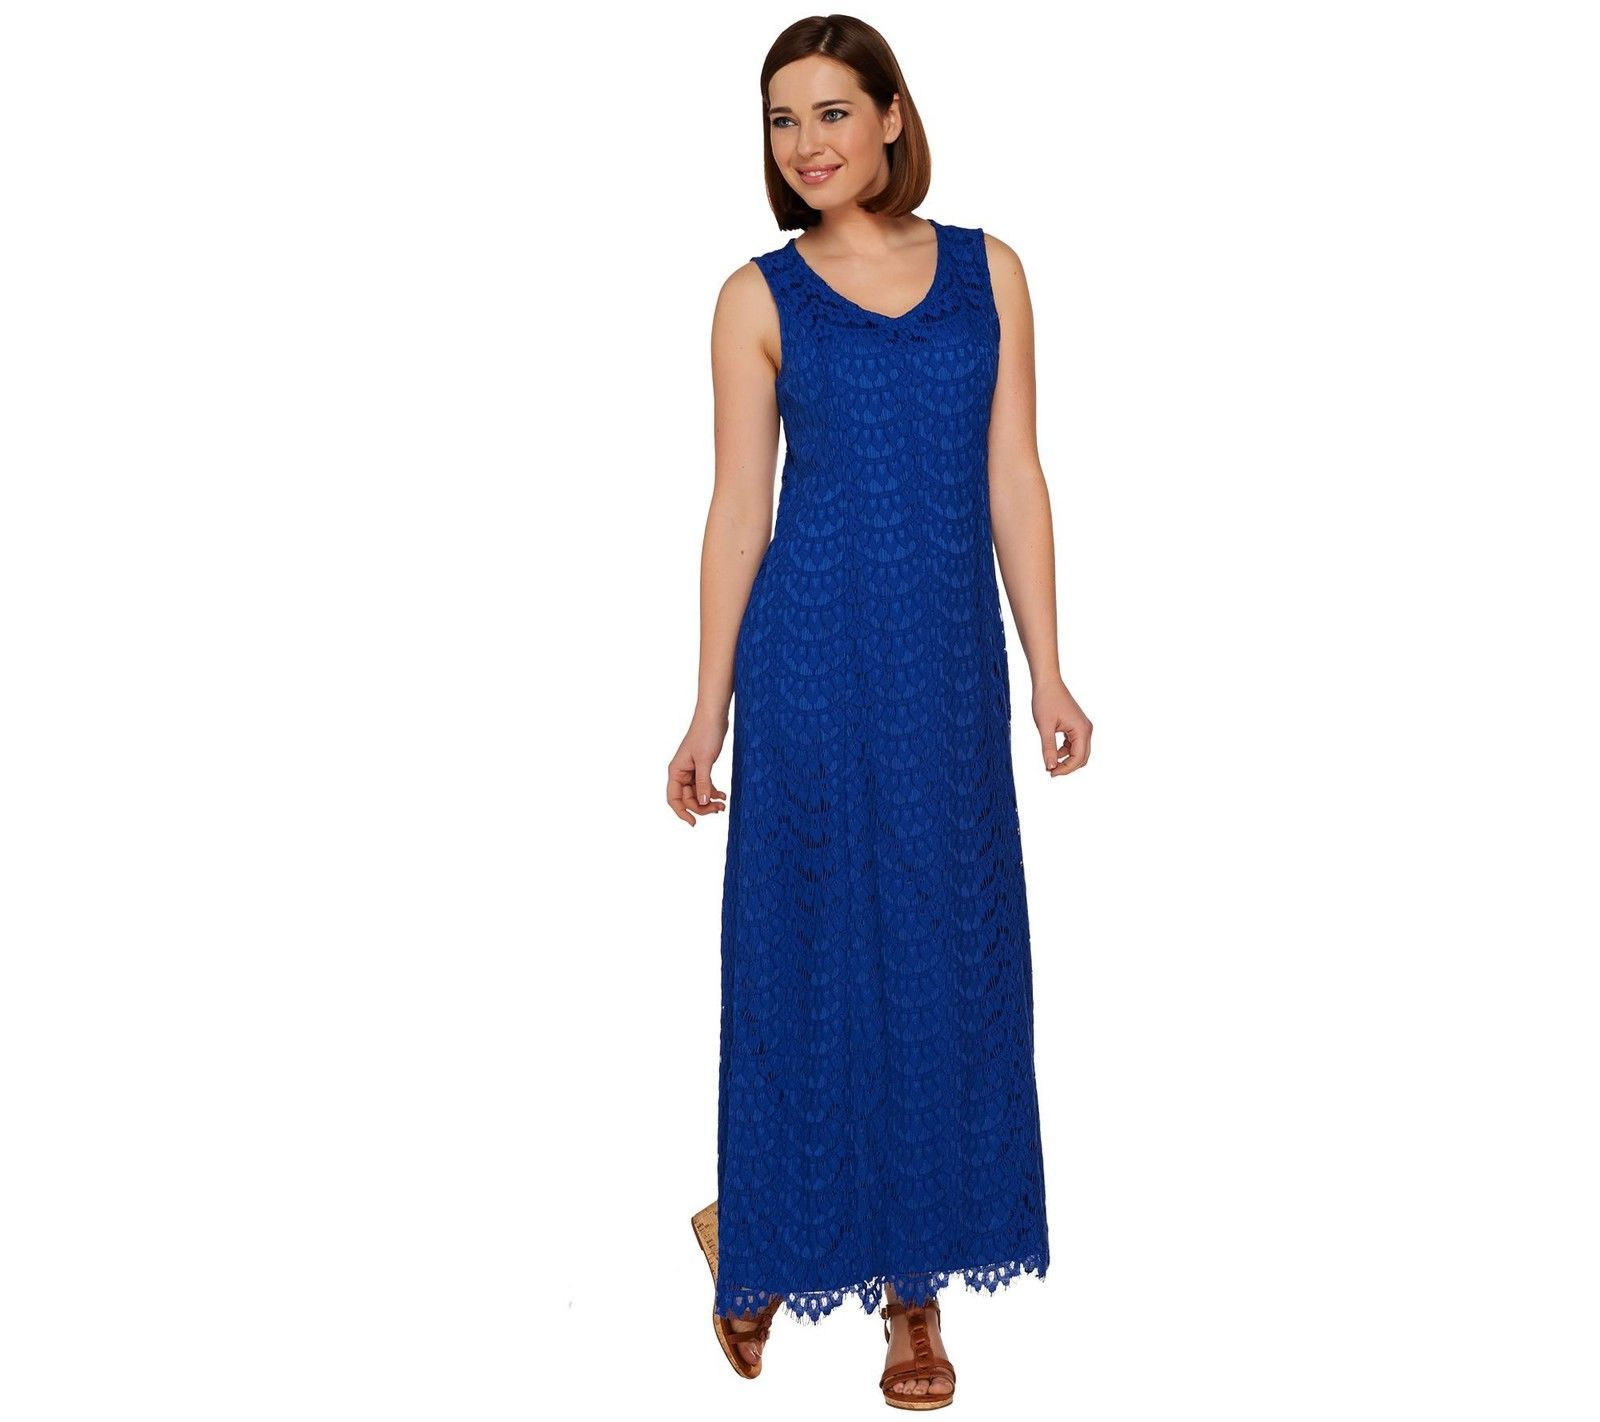 Lace v neck maxi dress  Isaac Mizrahi Lace VNeck Maxi Dress Zip Scallop Hem Ink Blue X NEW